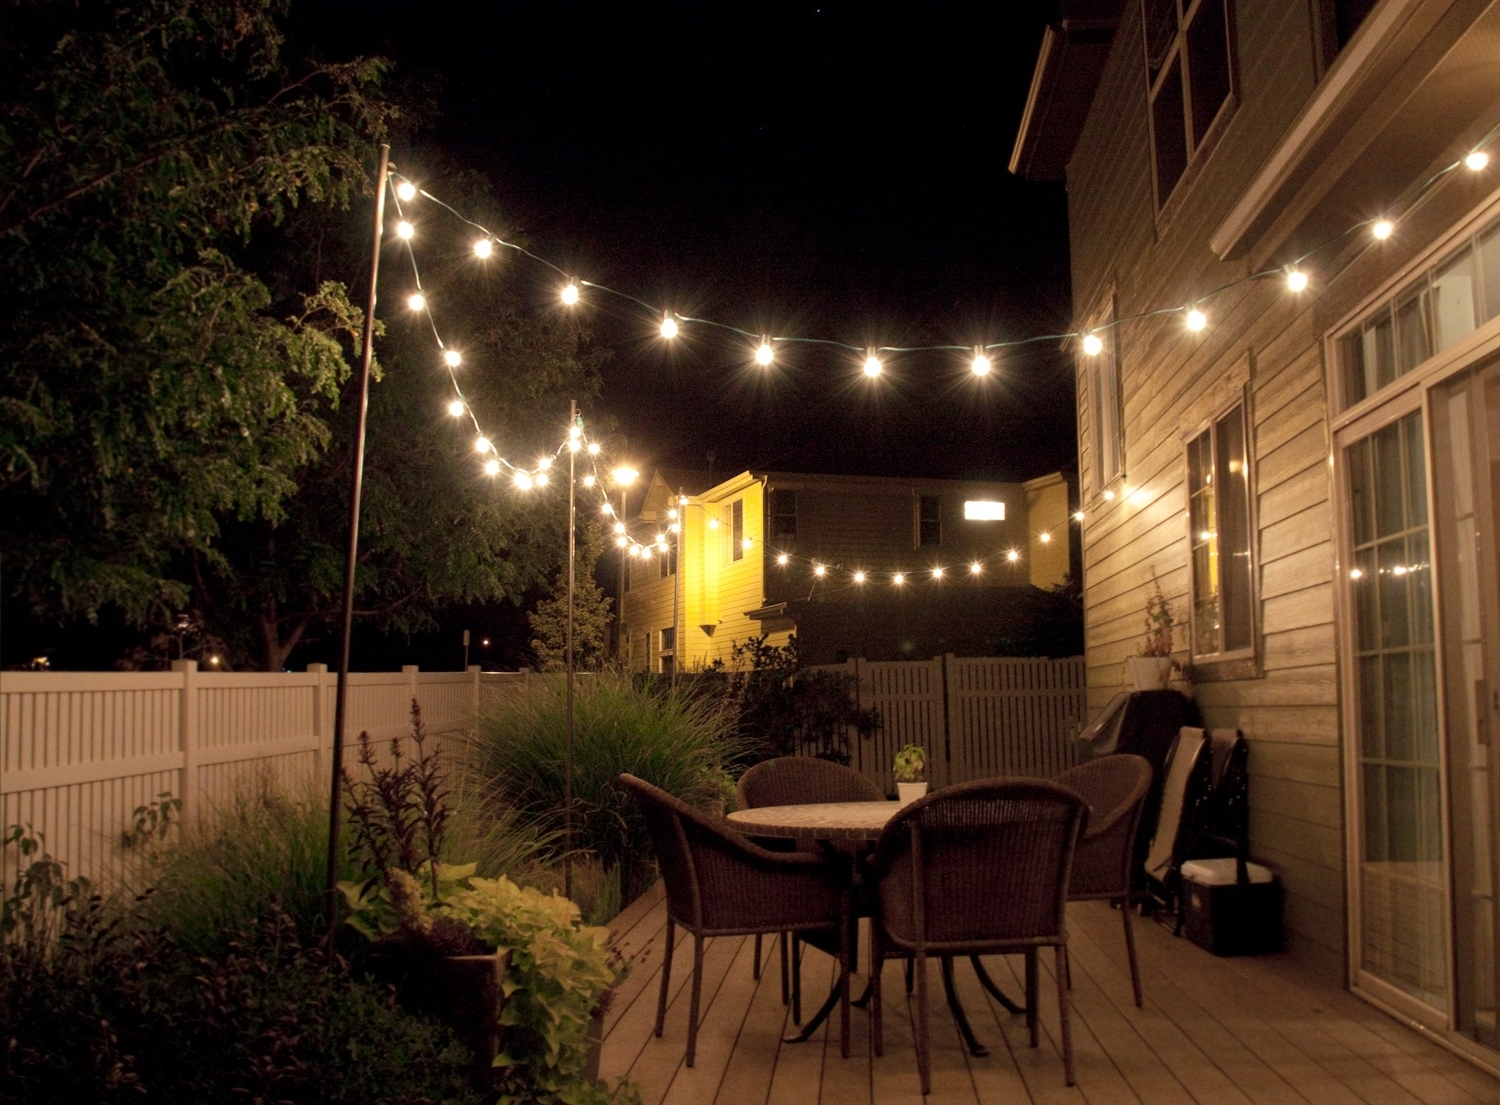 Outdoor Battery Operated Porch Lights — Bistrodre Porch And Intended For Best And Newest Battery Operated Outdoor Lighting (View 8 of 20)